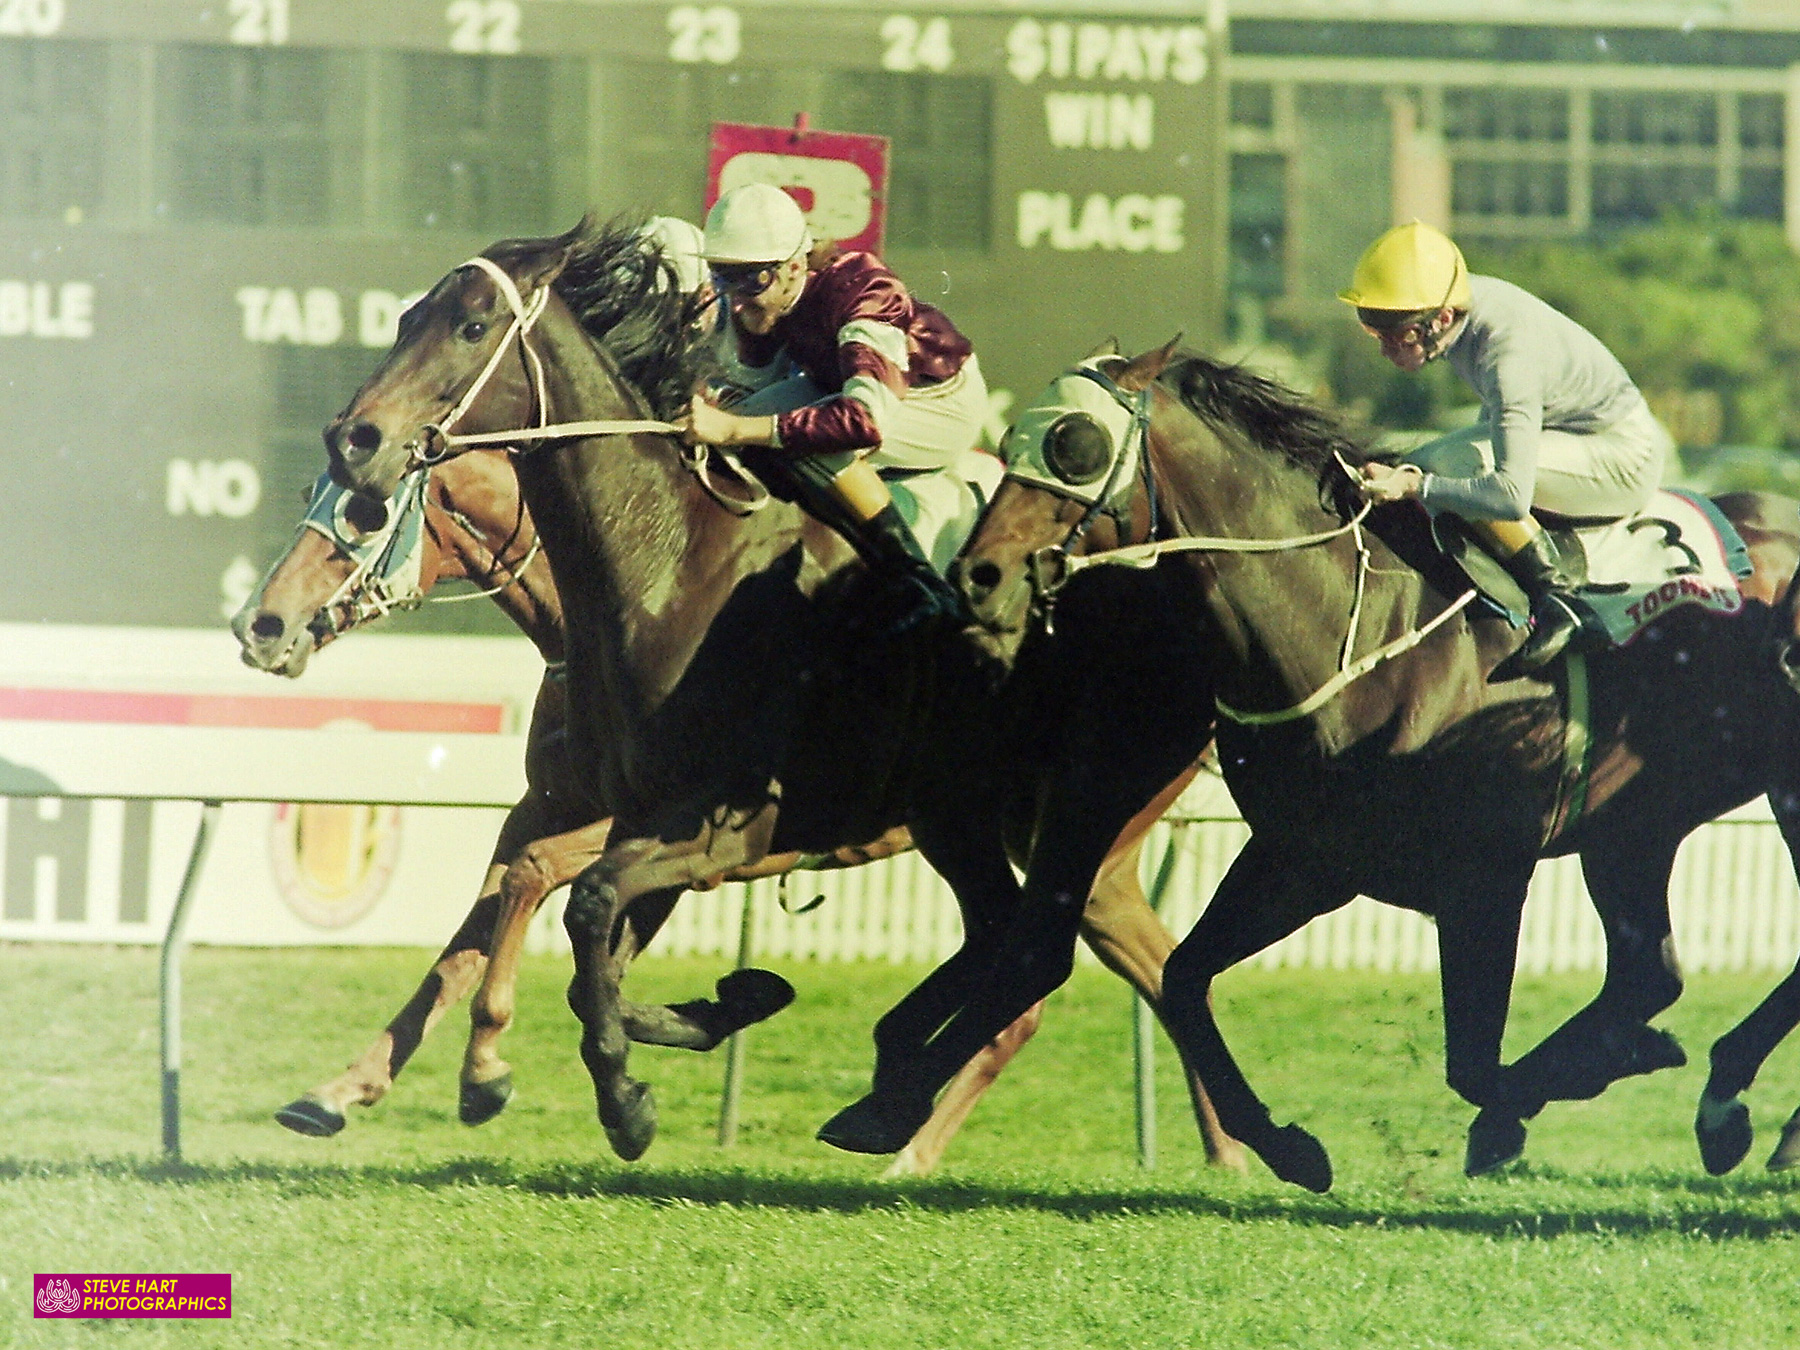 Image courtesy Steve Hart Photographics - Vo Rogue's only Sydney win in 8 attempts - the 1989 George Main Stakes defeating Groucho (Shane Dye) with Don't Play third.